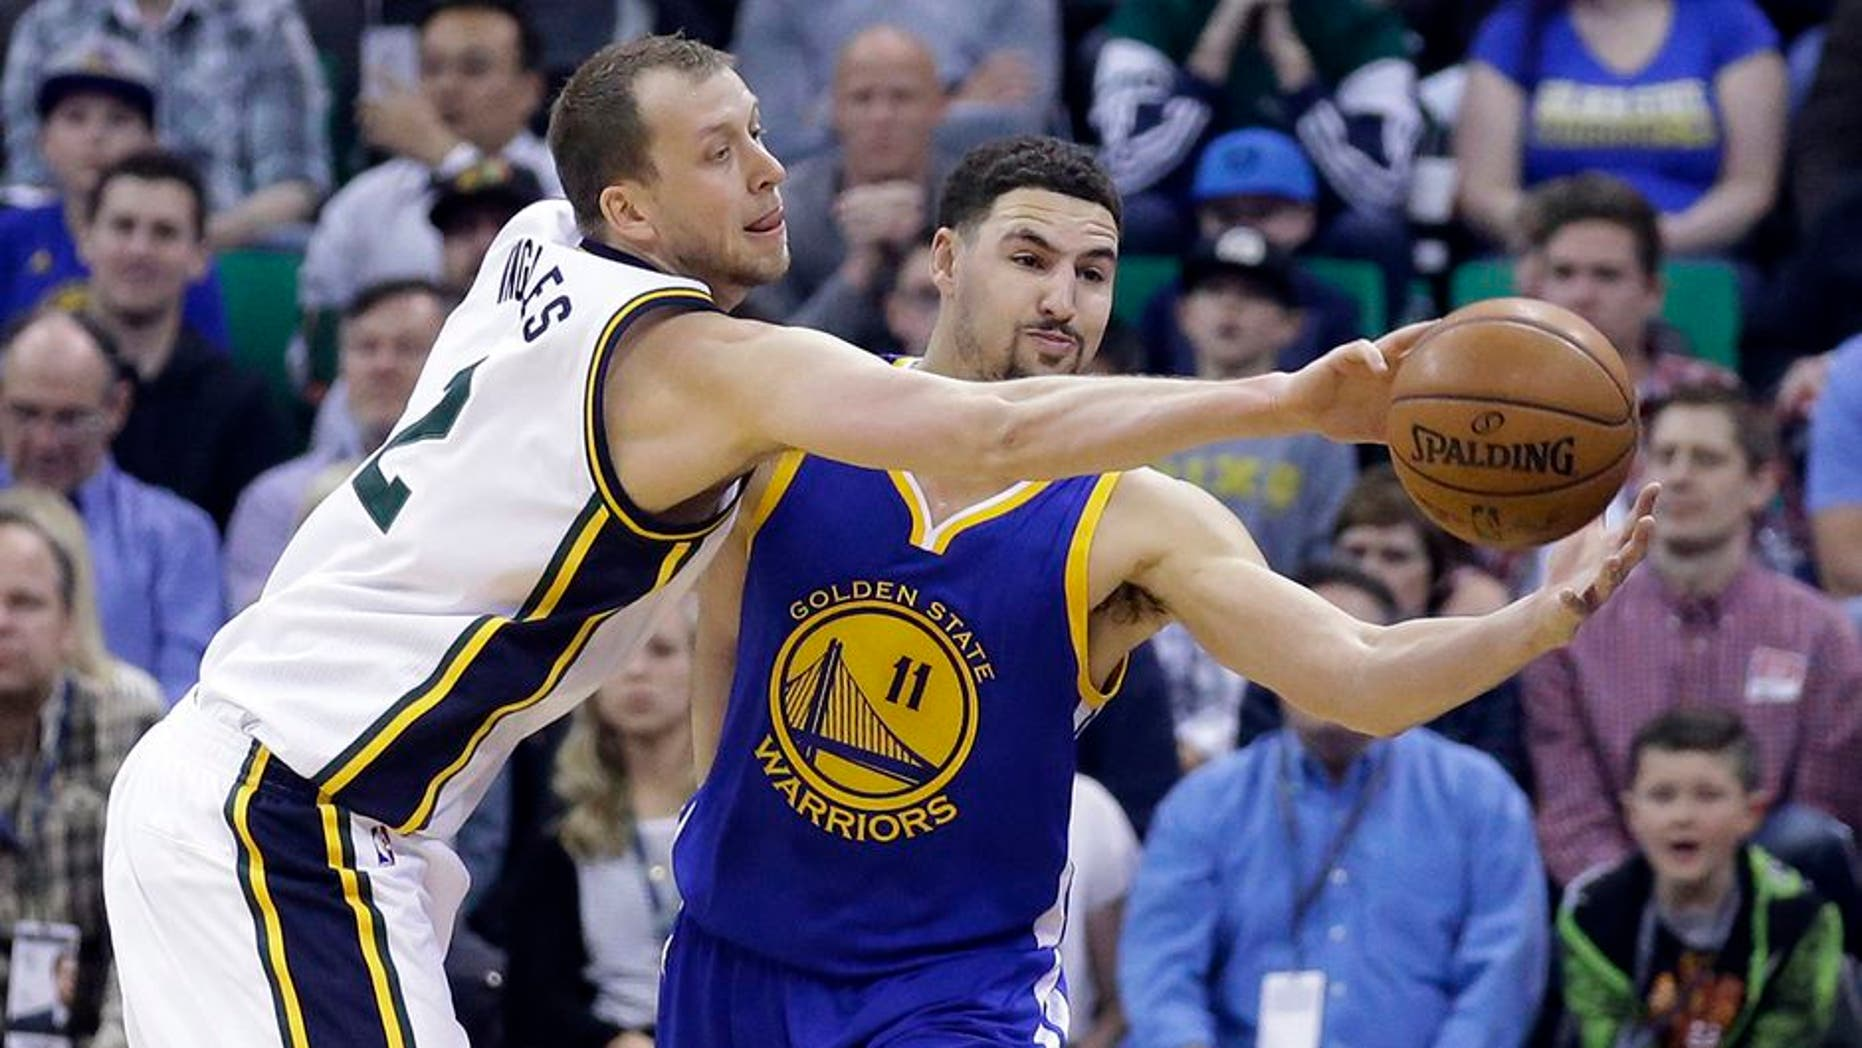 Utah Jazz forward Joe Ingles (2) defends against Golden State Warriors guard Klay Thompson (11) during the second quarter of an NBA basketball game Wednesday, March 30, 2016, in Salt Lake City. (AP Photo/Rick Bowmer)